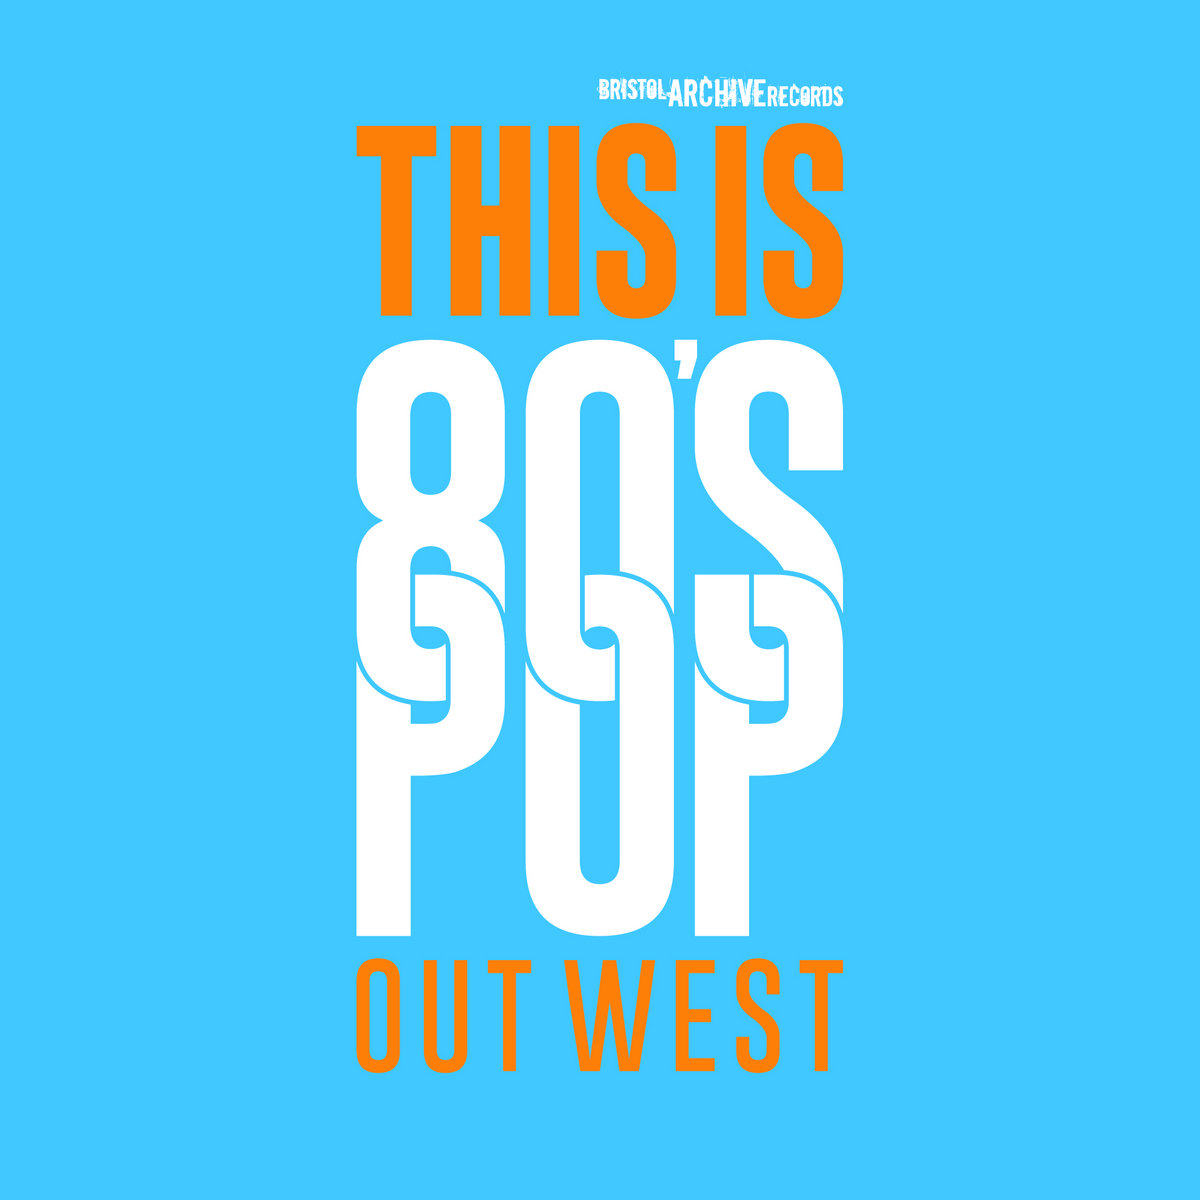 This Is 80's Pop (Out West) | Bristol Archive Records